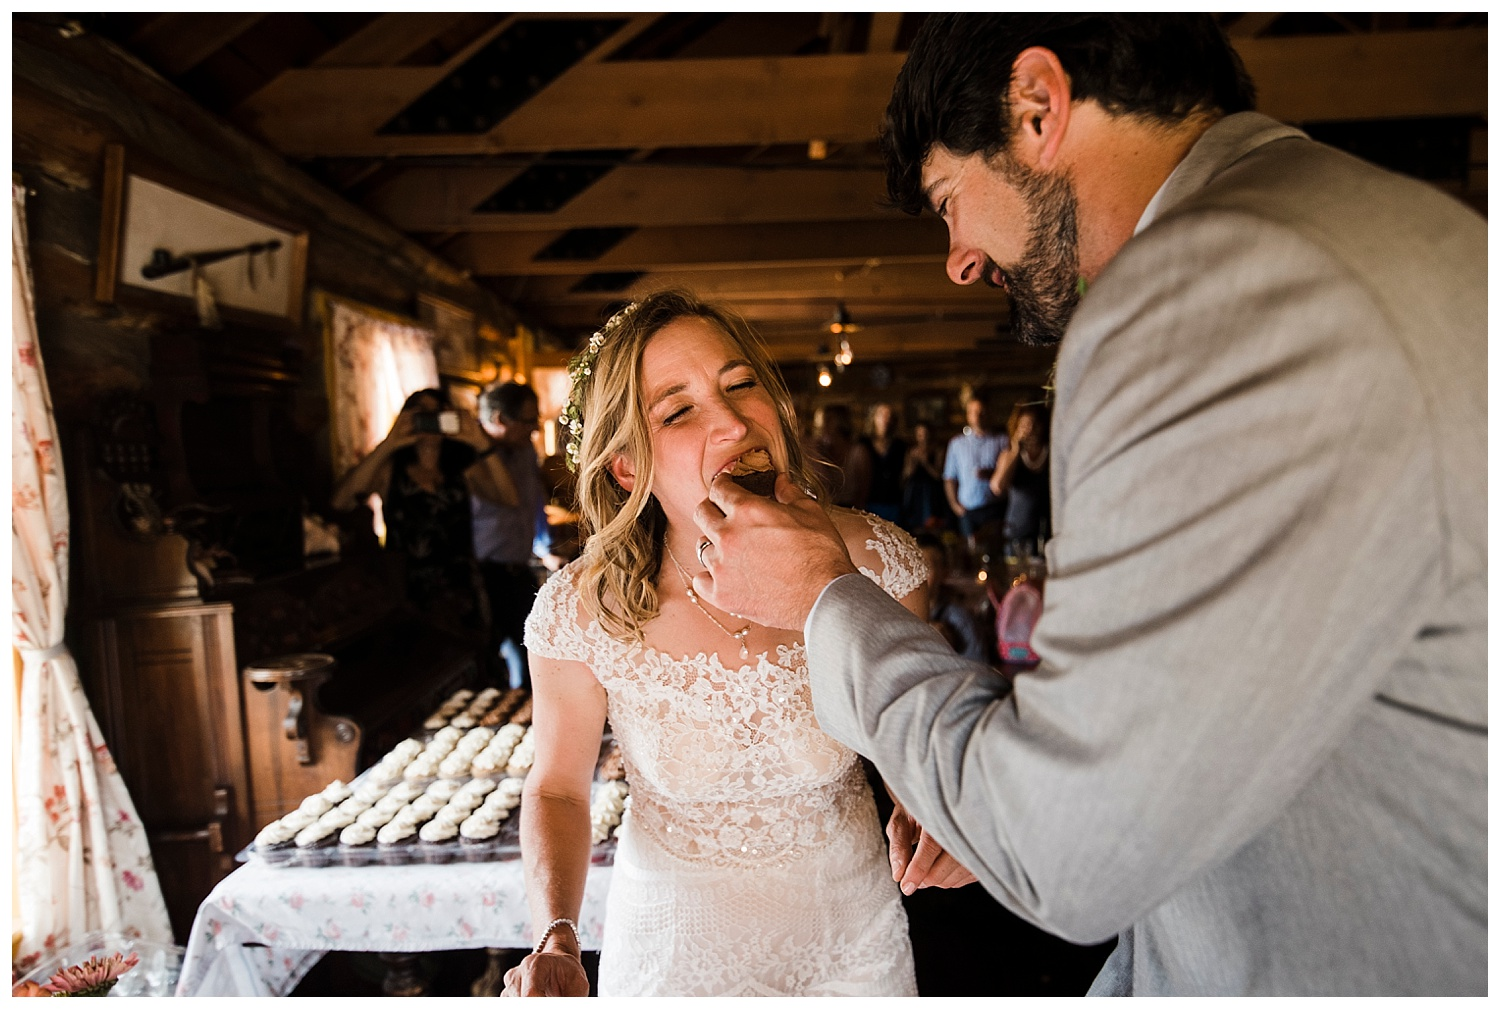 Gold_Hill_Inn_Wedding_Boulder_CO_Apollo_Fields_467.jpg